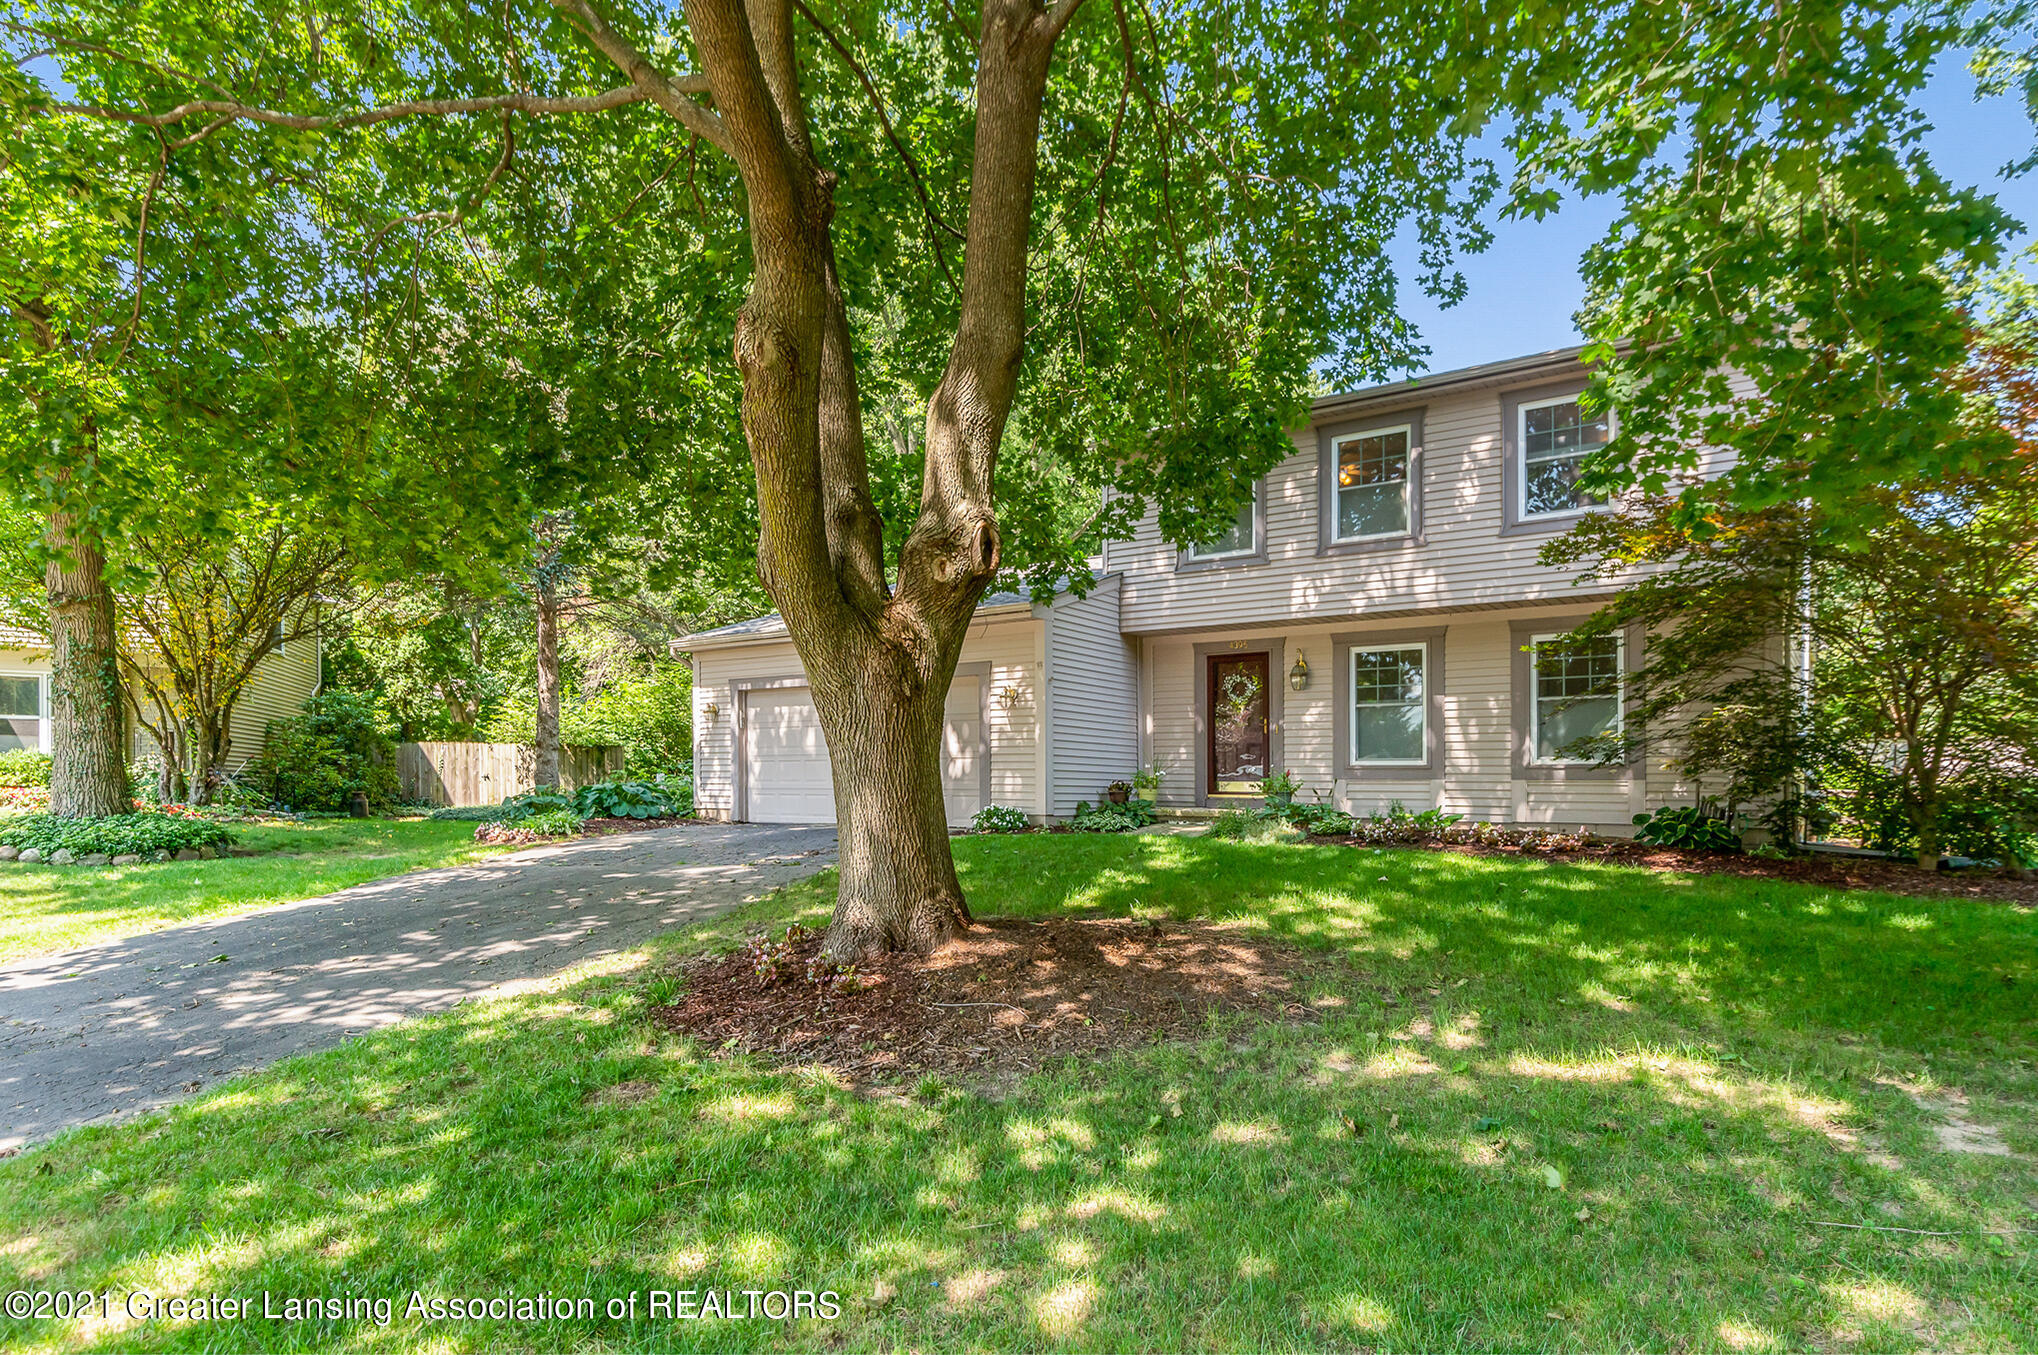 4395 Stoneycroft Dr - Welcome home! - 1